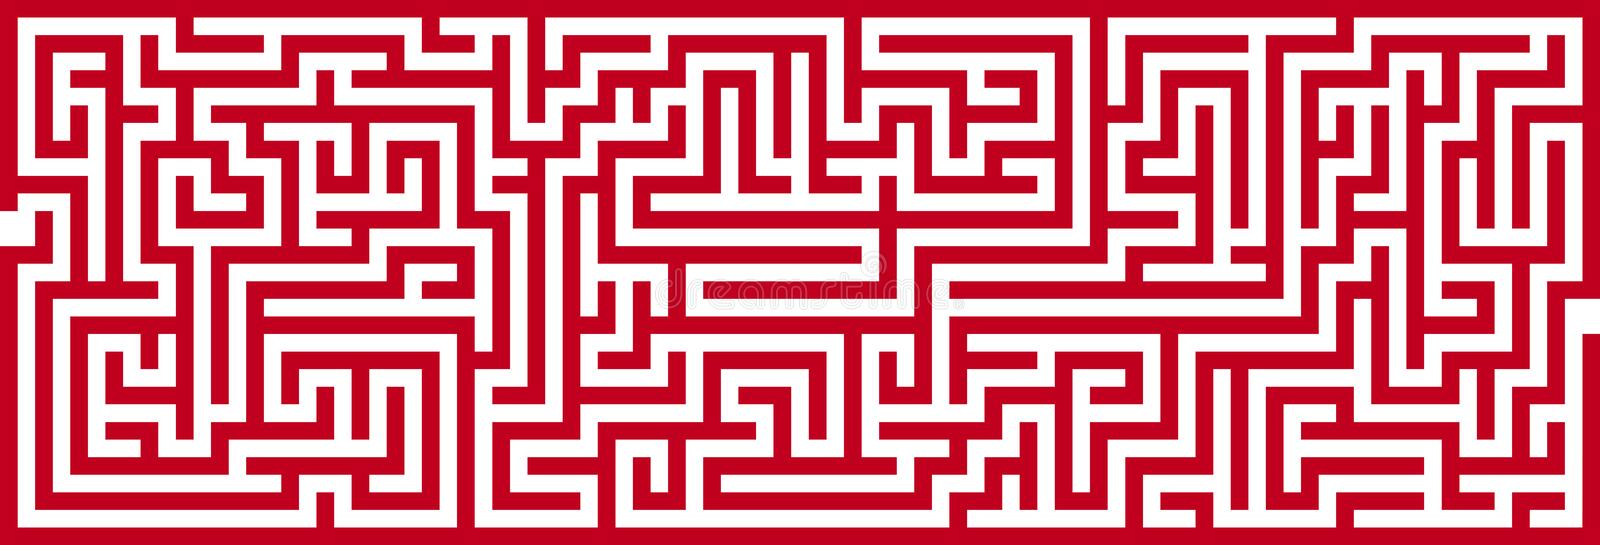 Download Simple Maze Cutout stock vector. Image of concept, labyrinth - 30197934